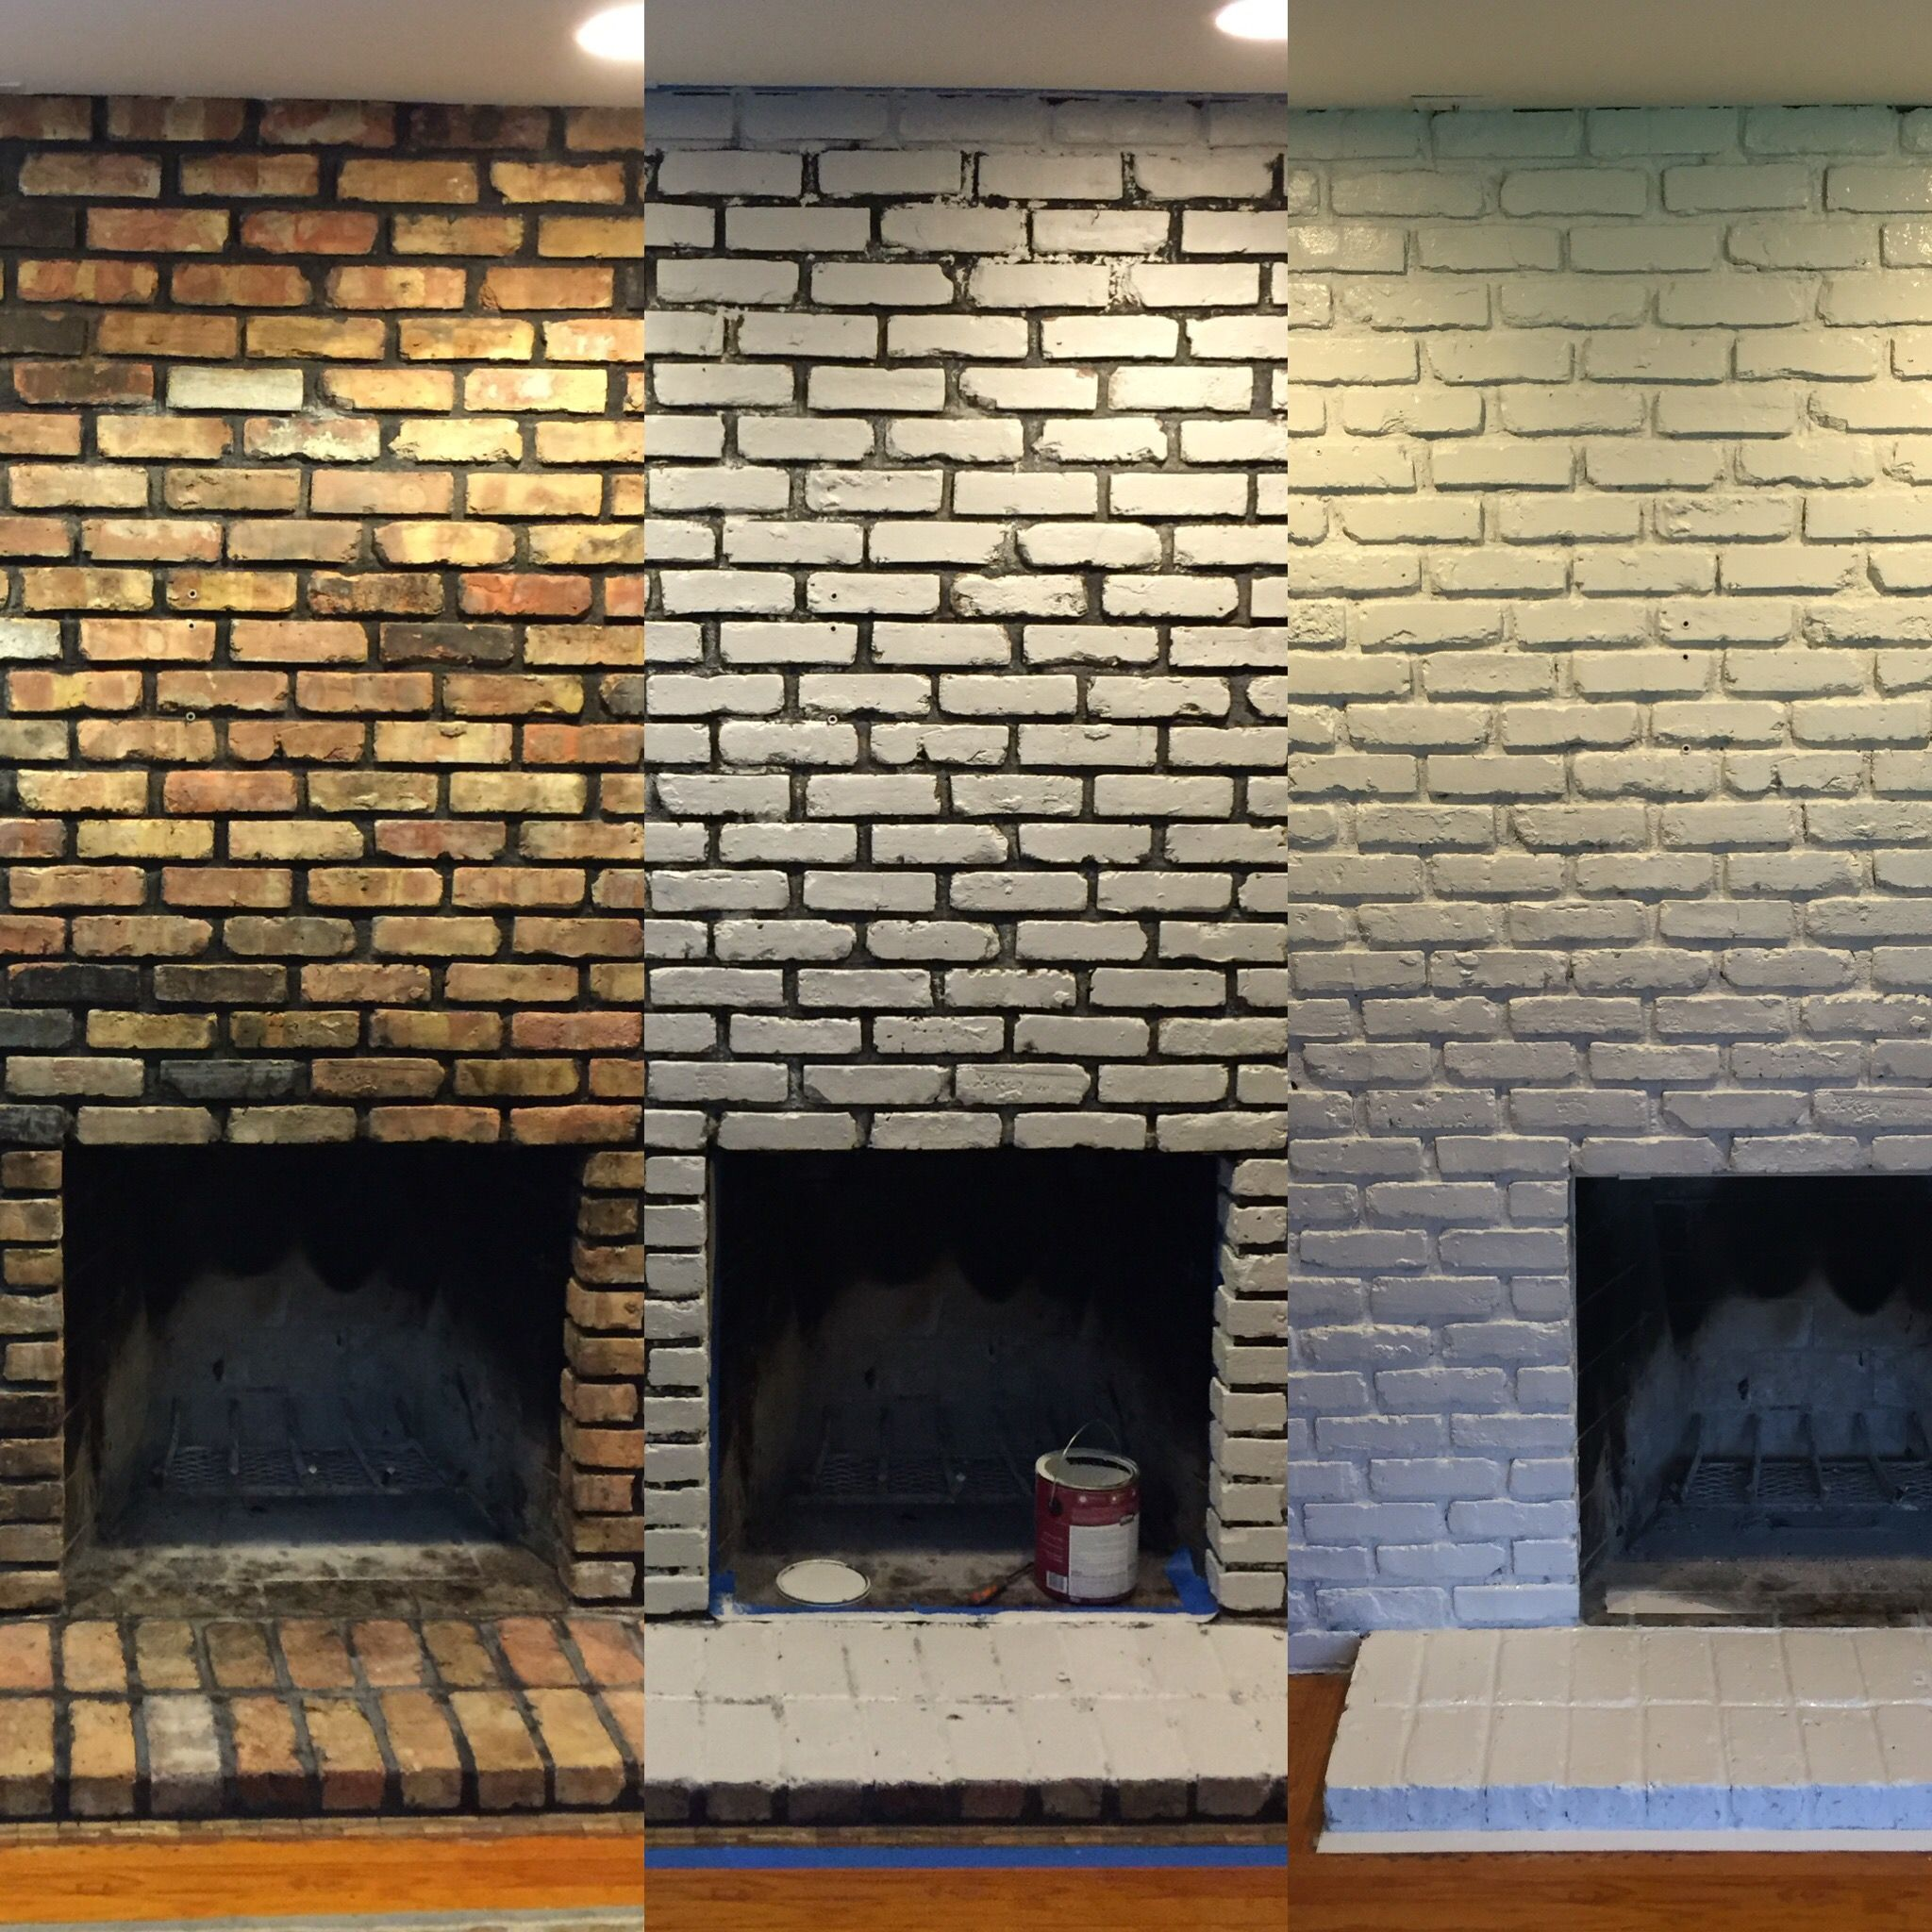 diy brick fireplace update from black mortar and dated brick to